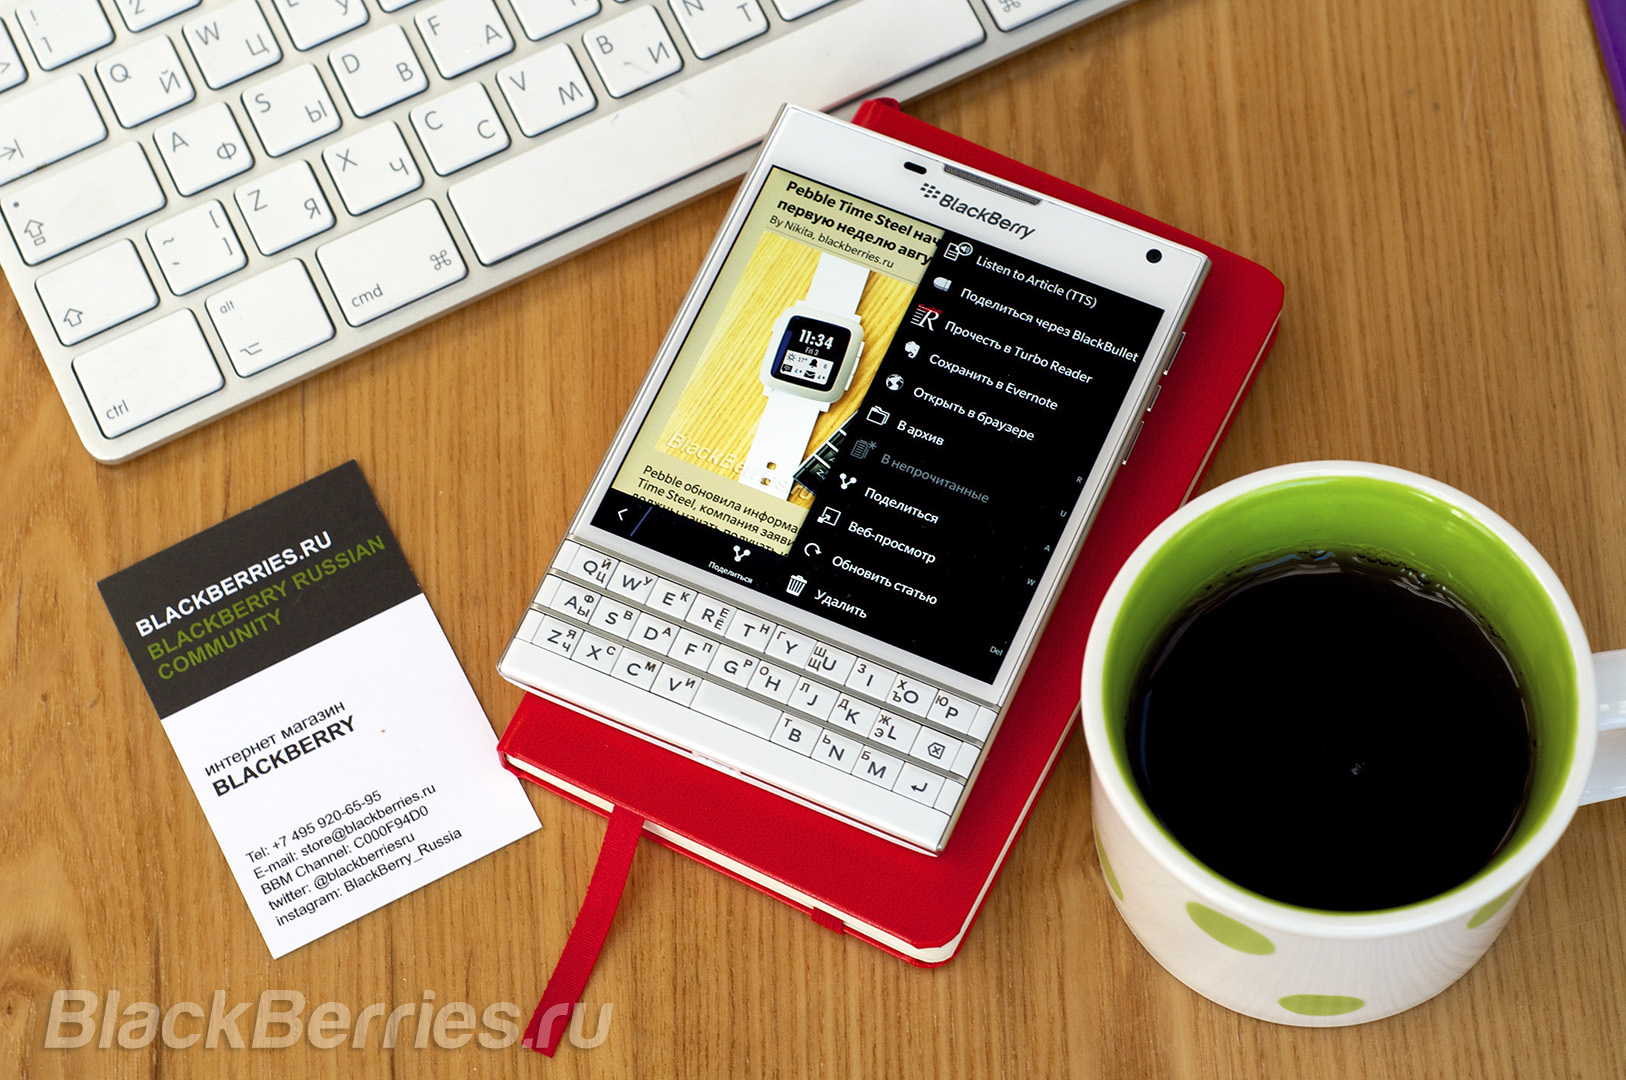 BlackBerry-Passport-Apps-31-07-02